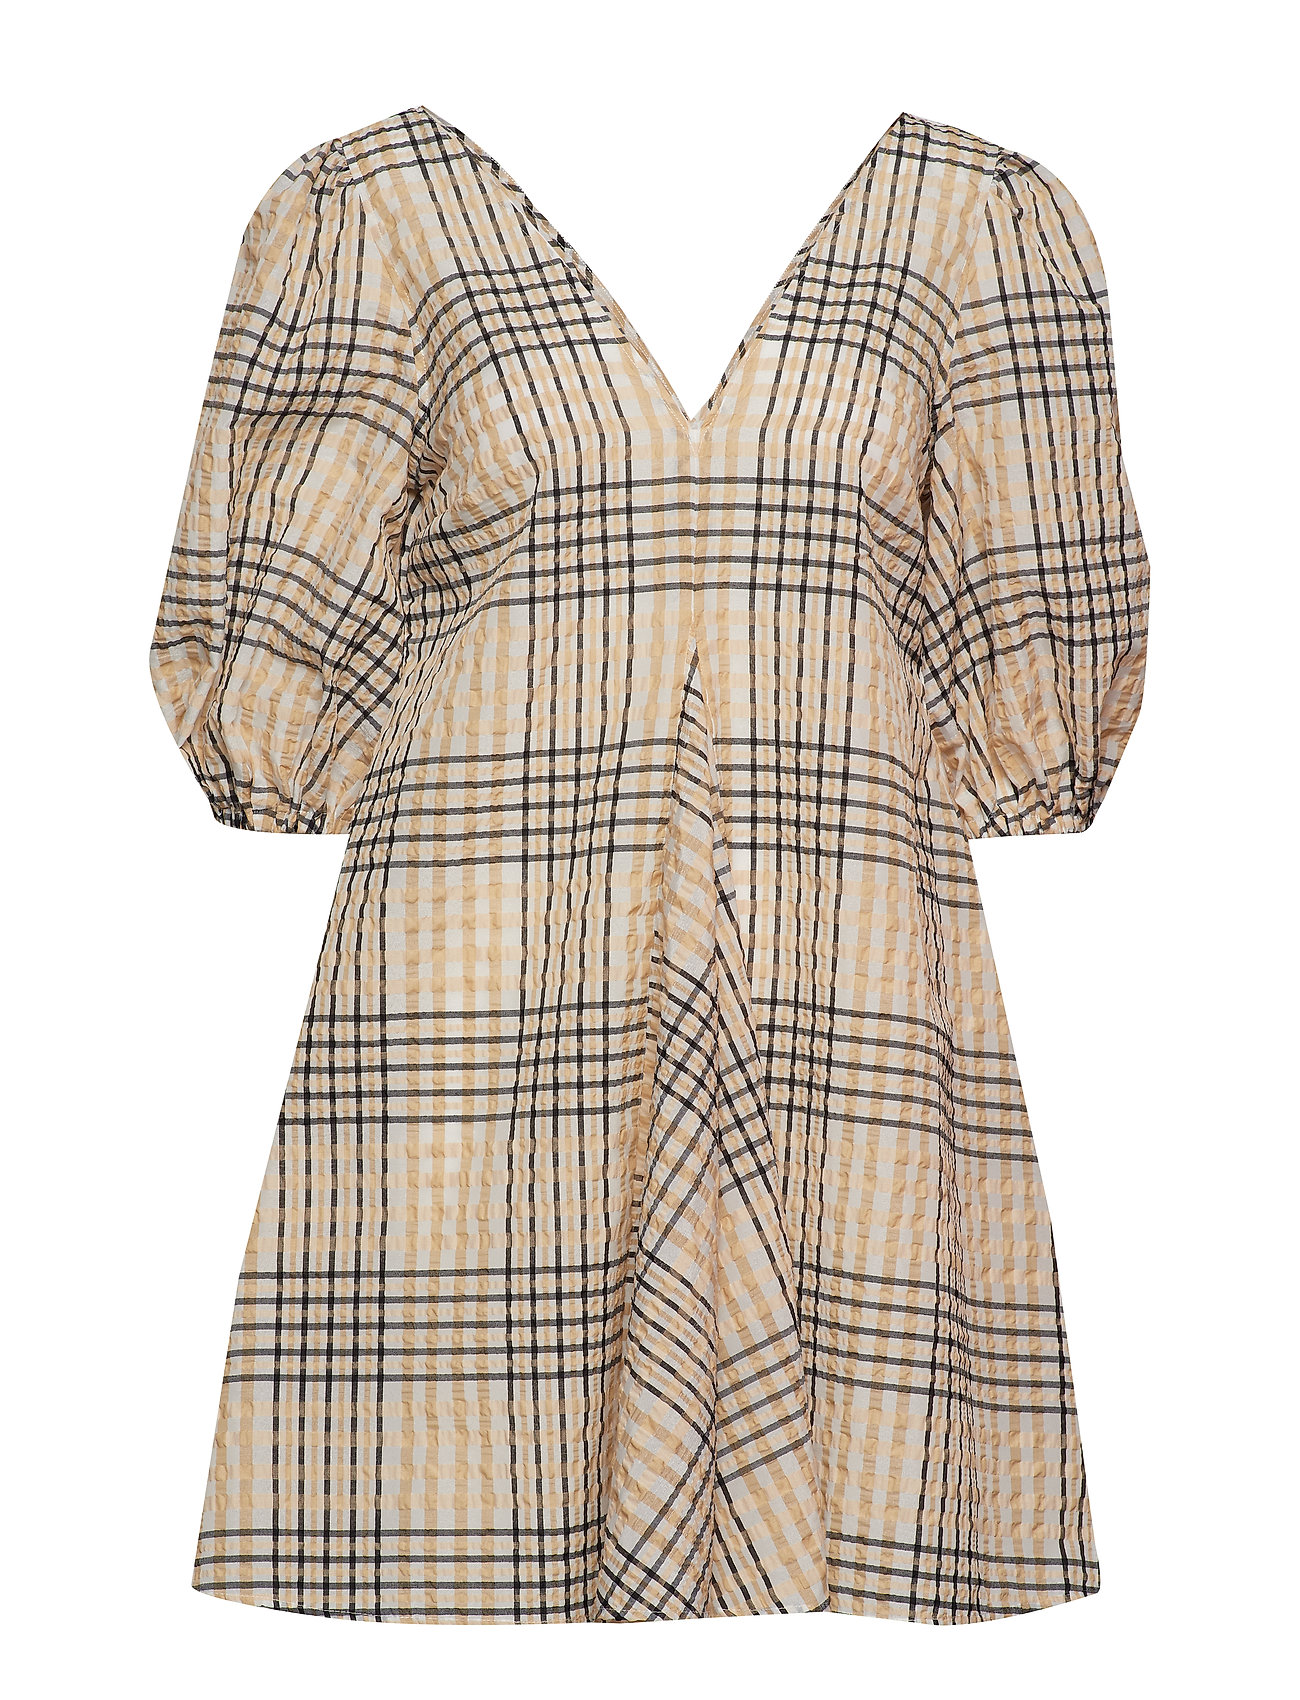 Ganni Seersucker Check Dress - IRISH CREAM